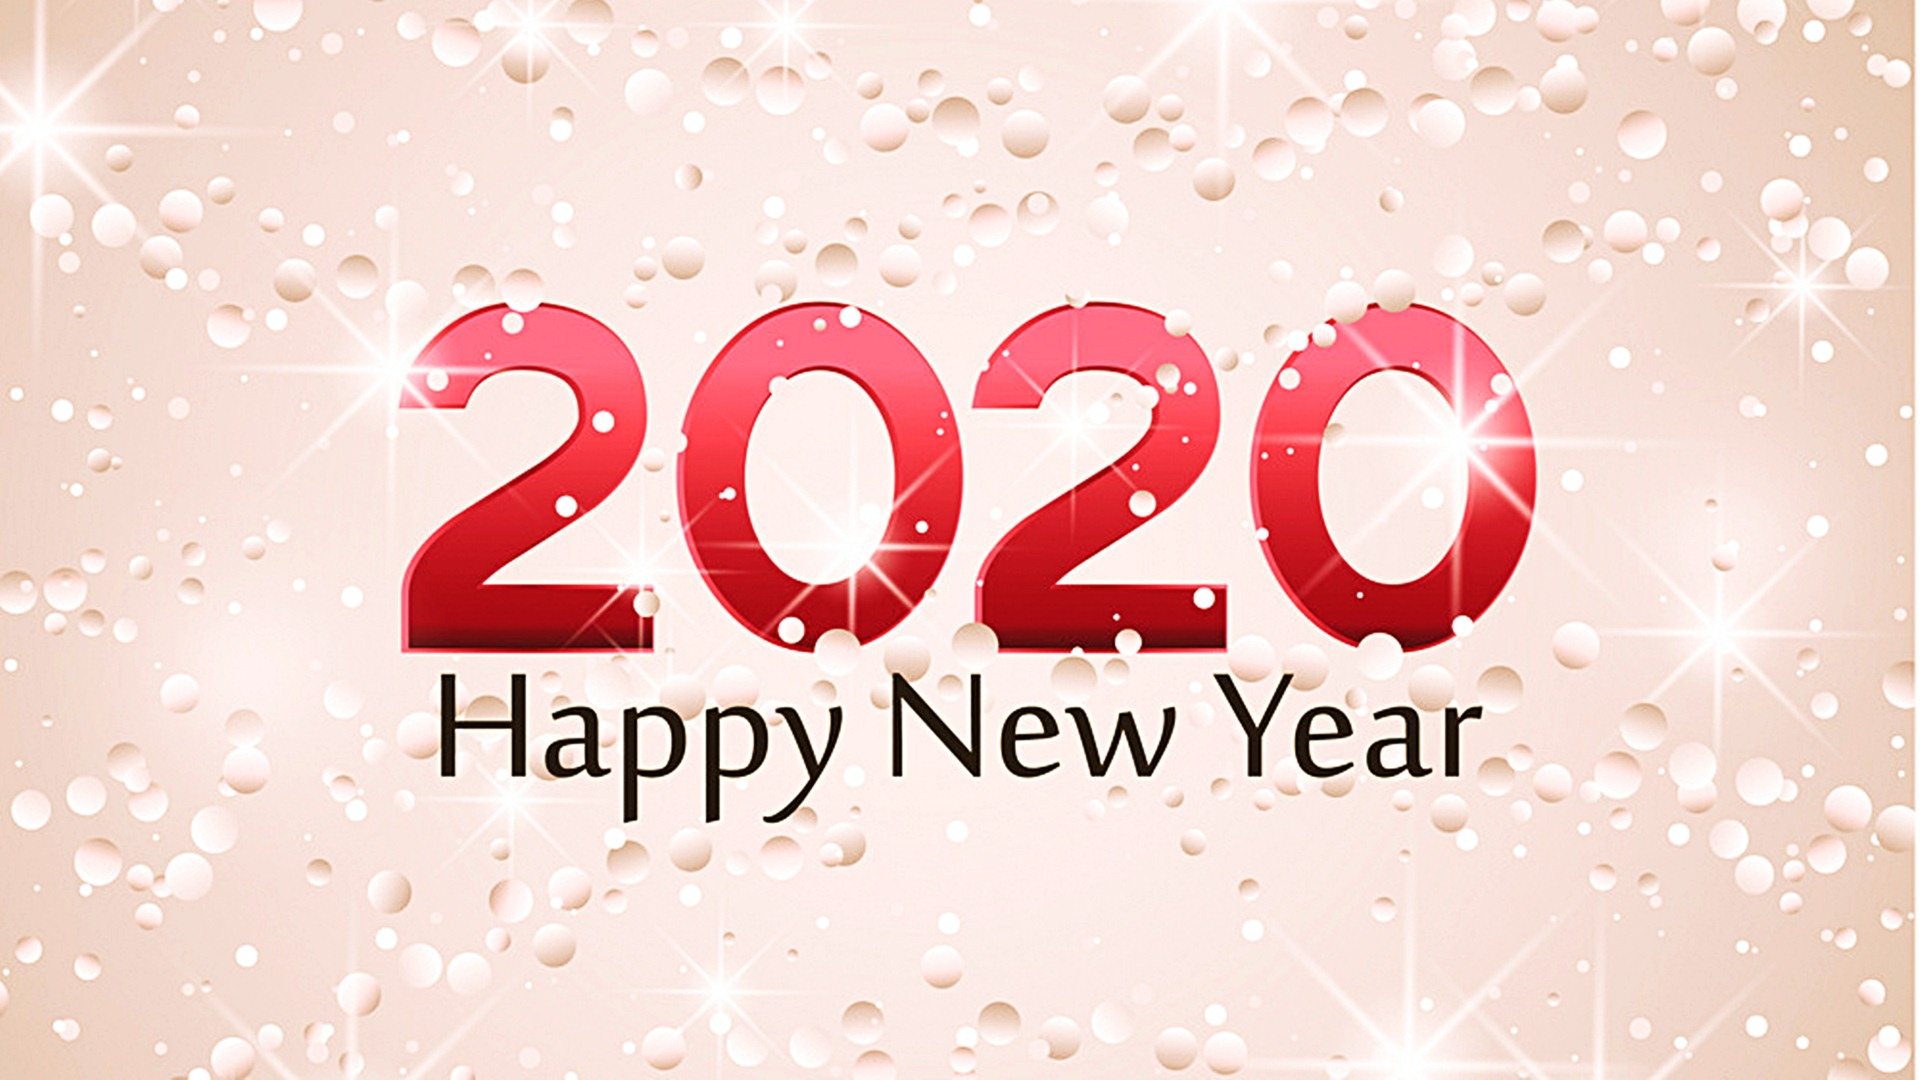 Happy New Year 2020 Wallpaper HD 45554   Baltana 1920x1080